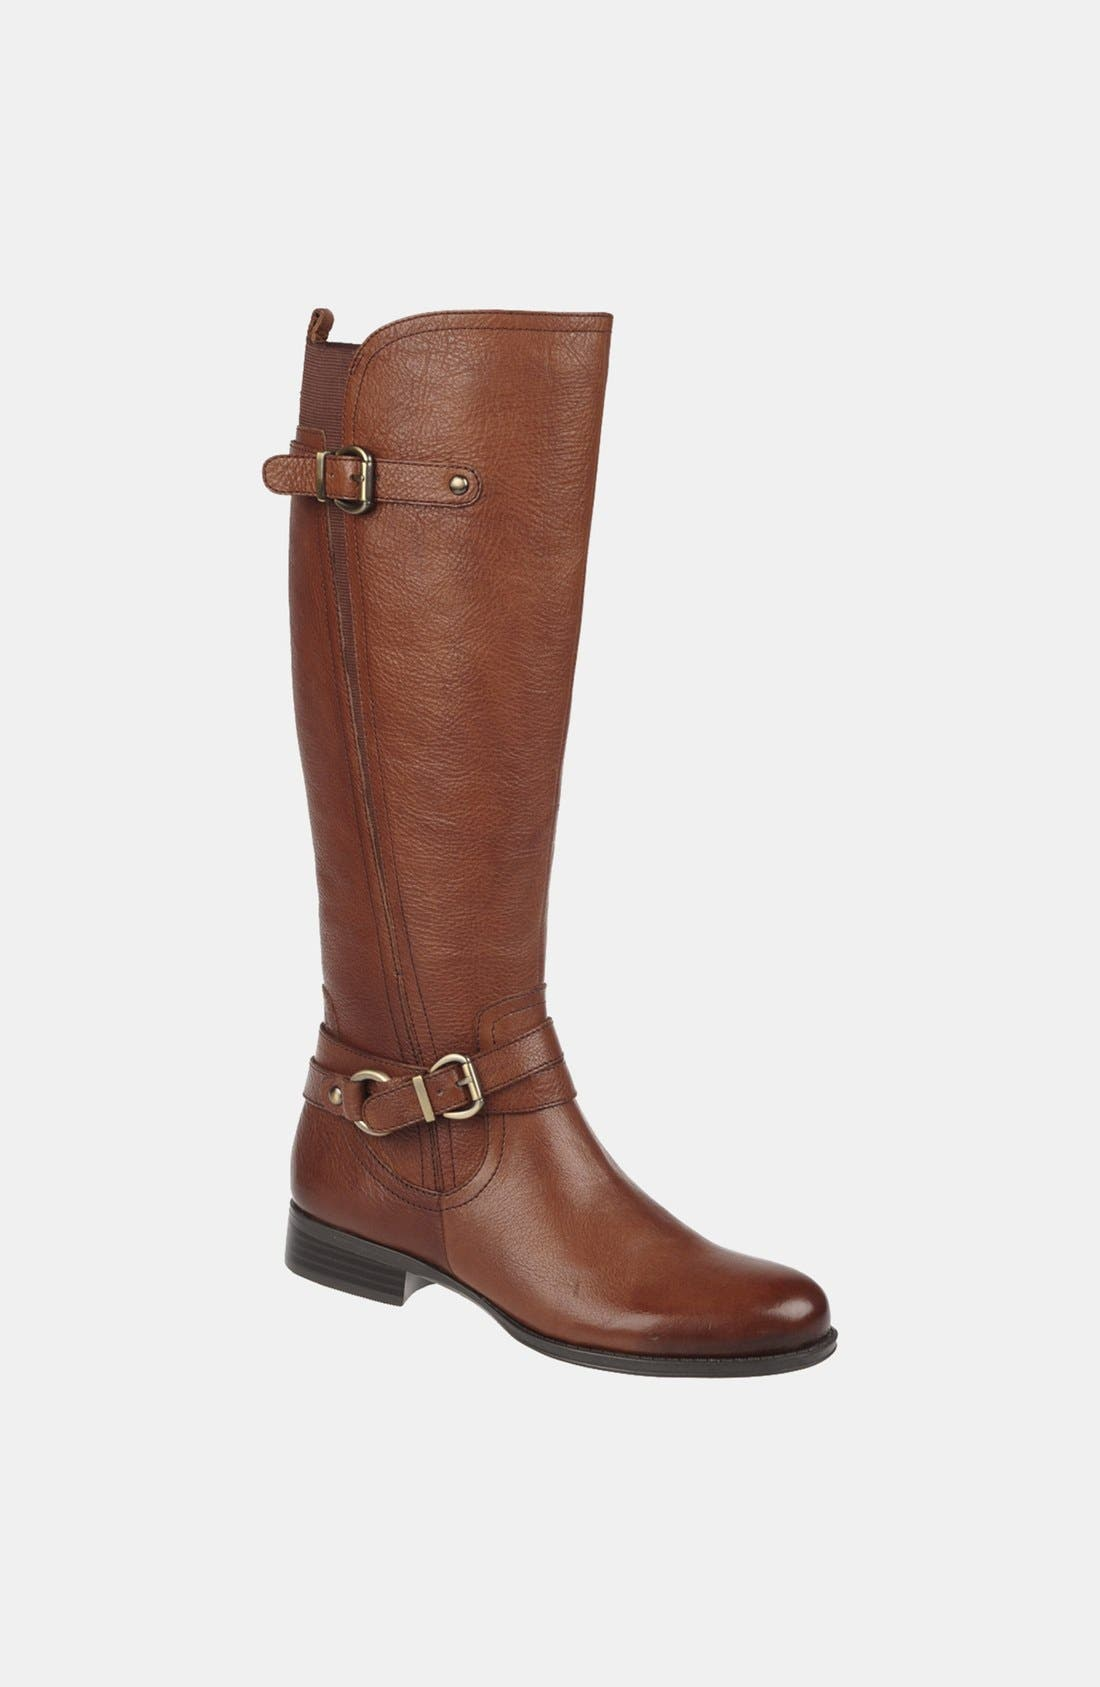 Main Image - Naturalizer 'Juletta' Tall Riding Boot (Wide Calf) (Online Only)